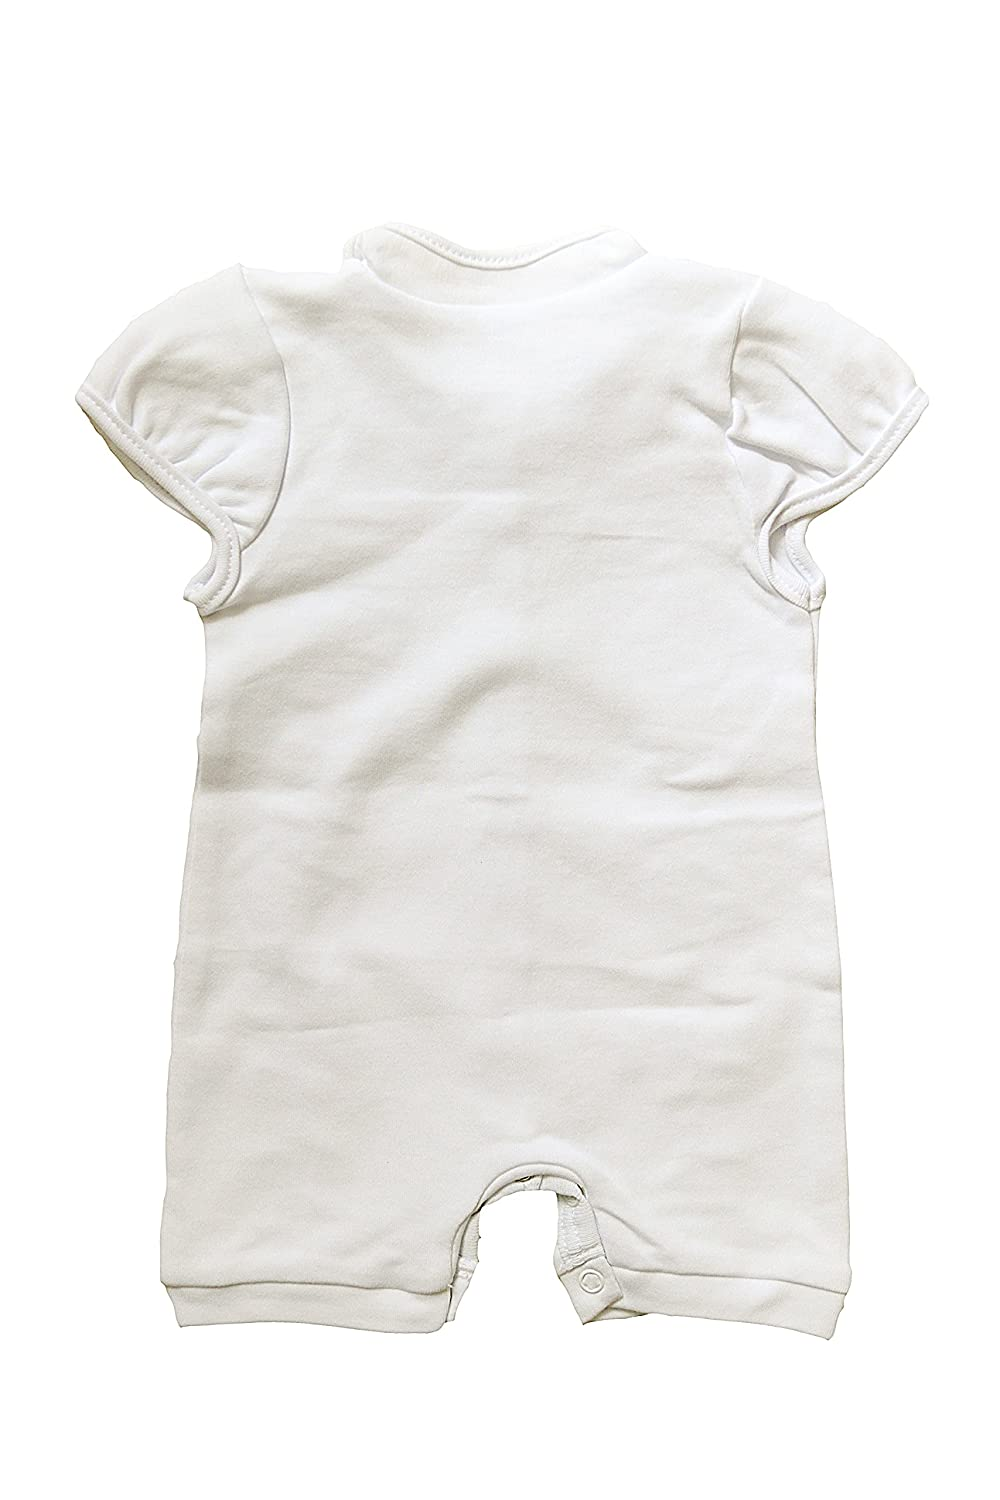 Three Snails Baby Boy White Romper Christening Toddler Outfit Baptism Newborn Cotton Clothes